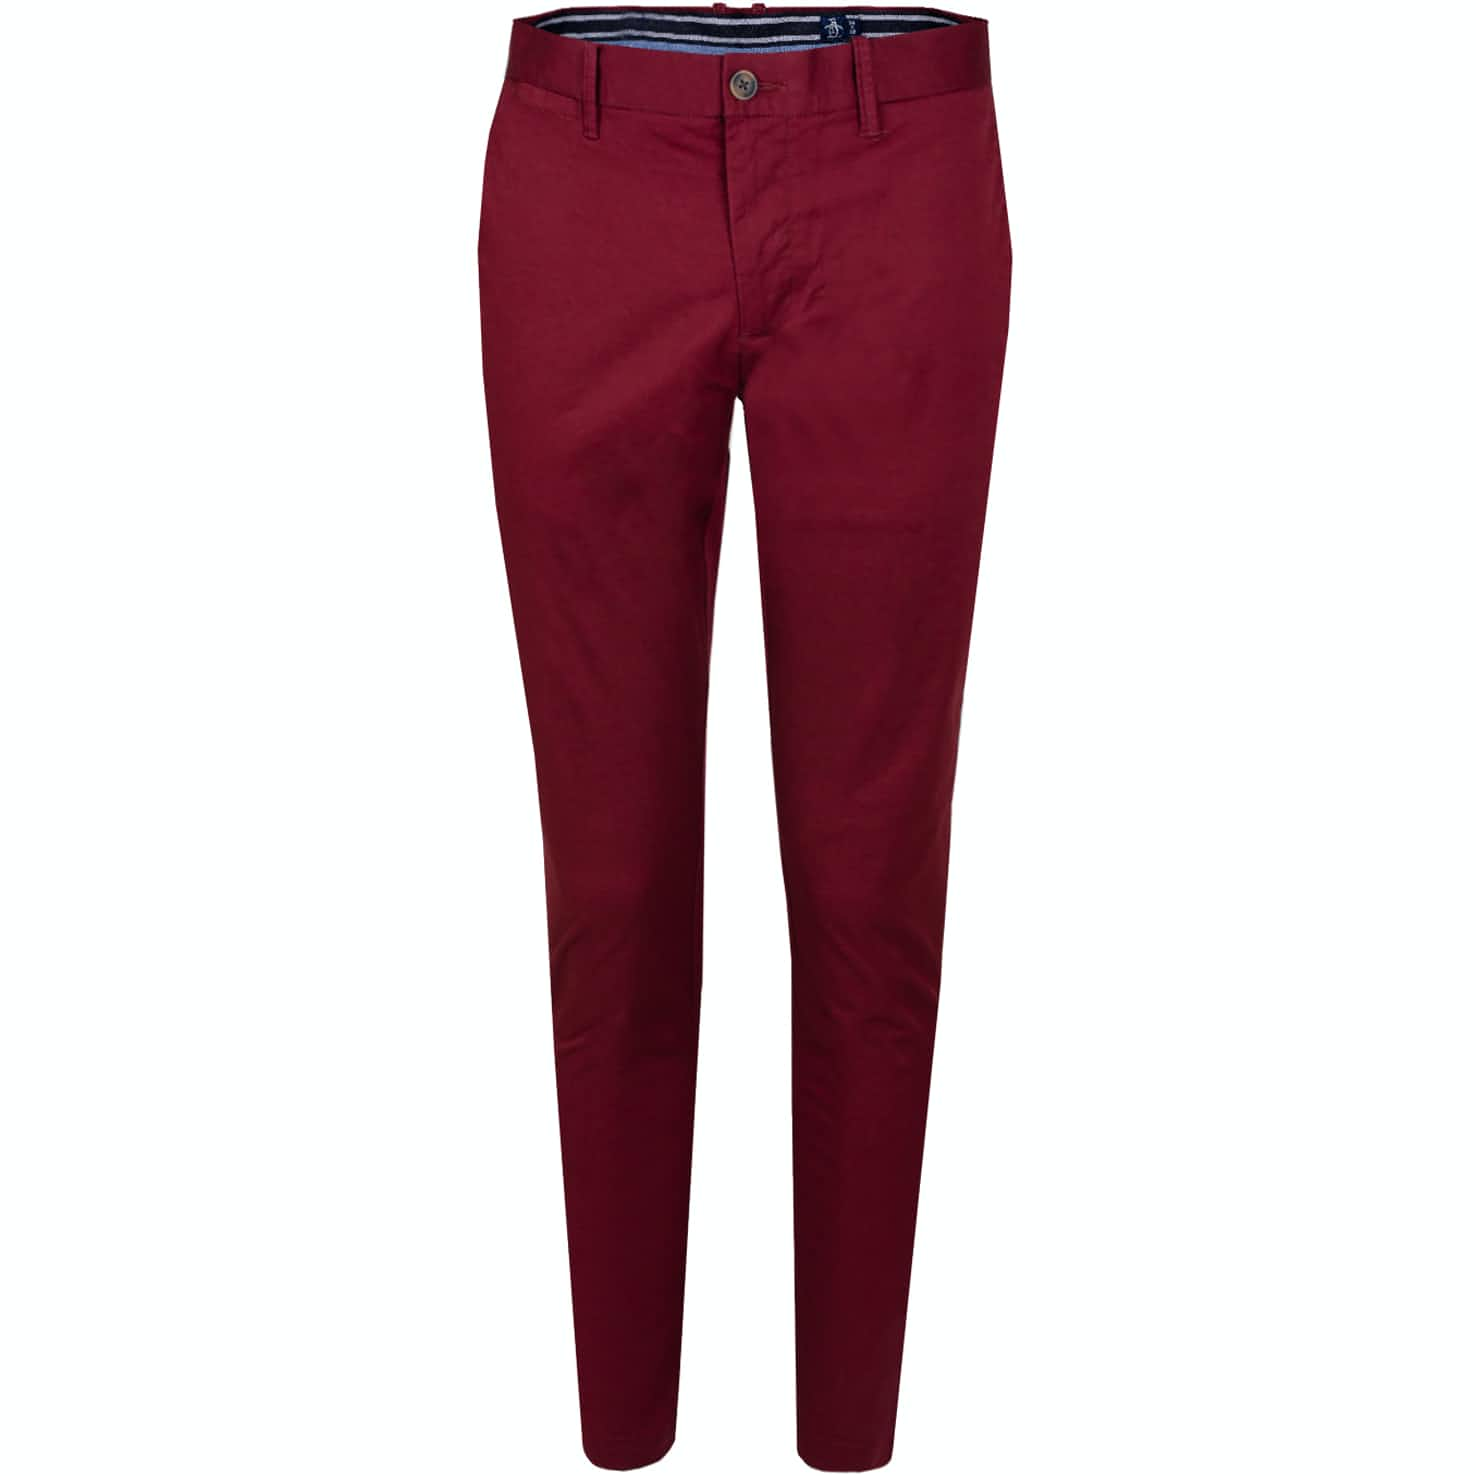 P55 Chino Trousers Tawny Port - AW19